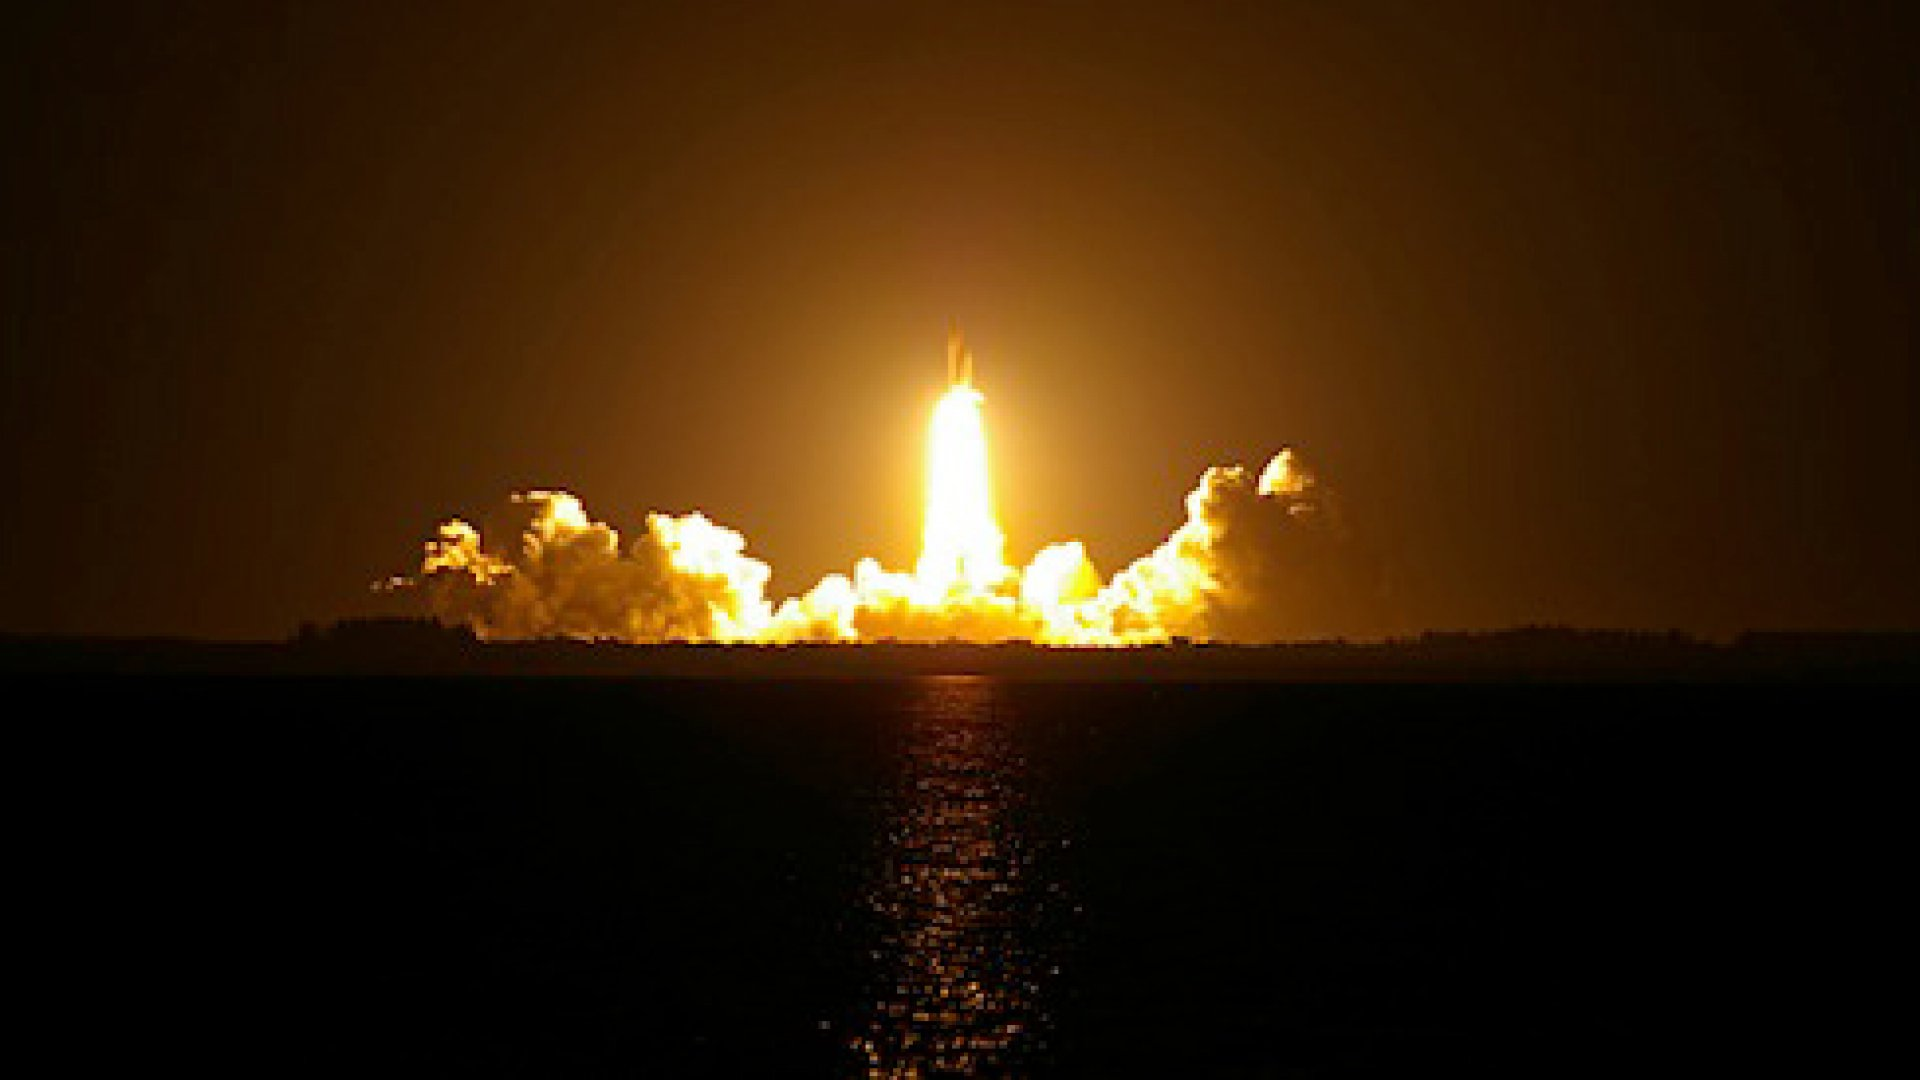 Why You Should Eliminate 'Launch' From Your Vocabulary